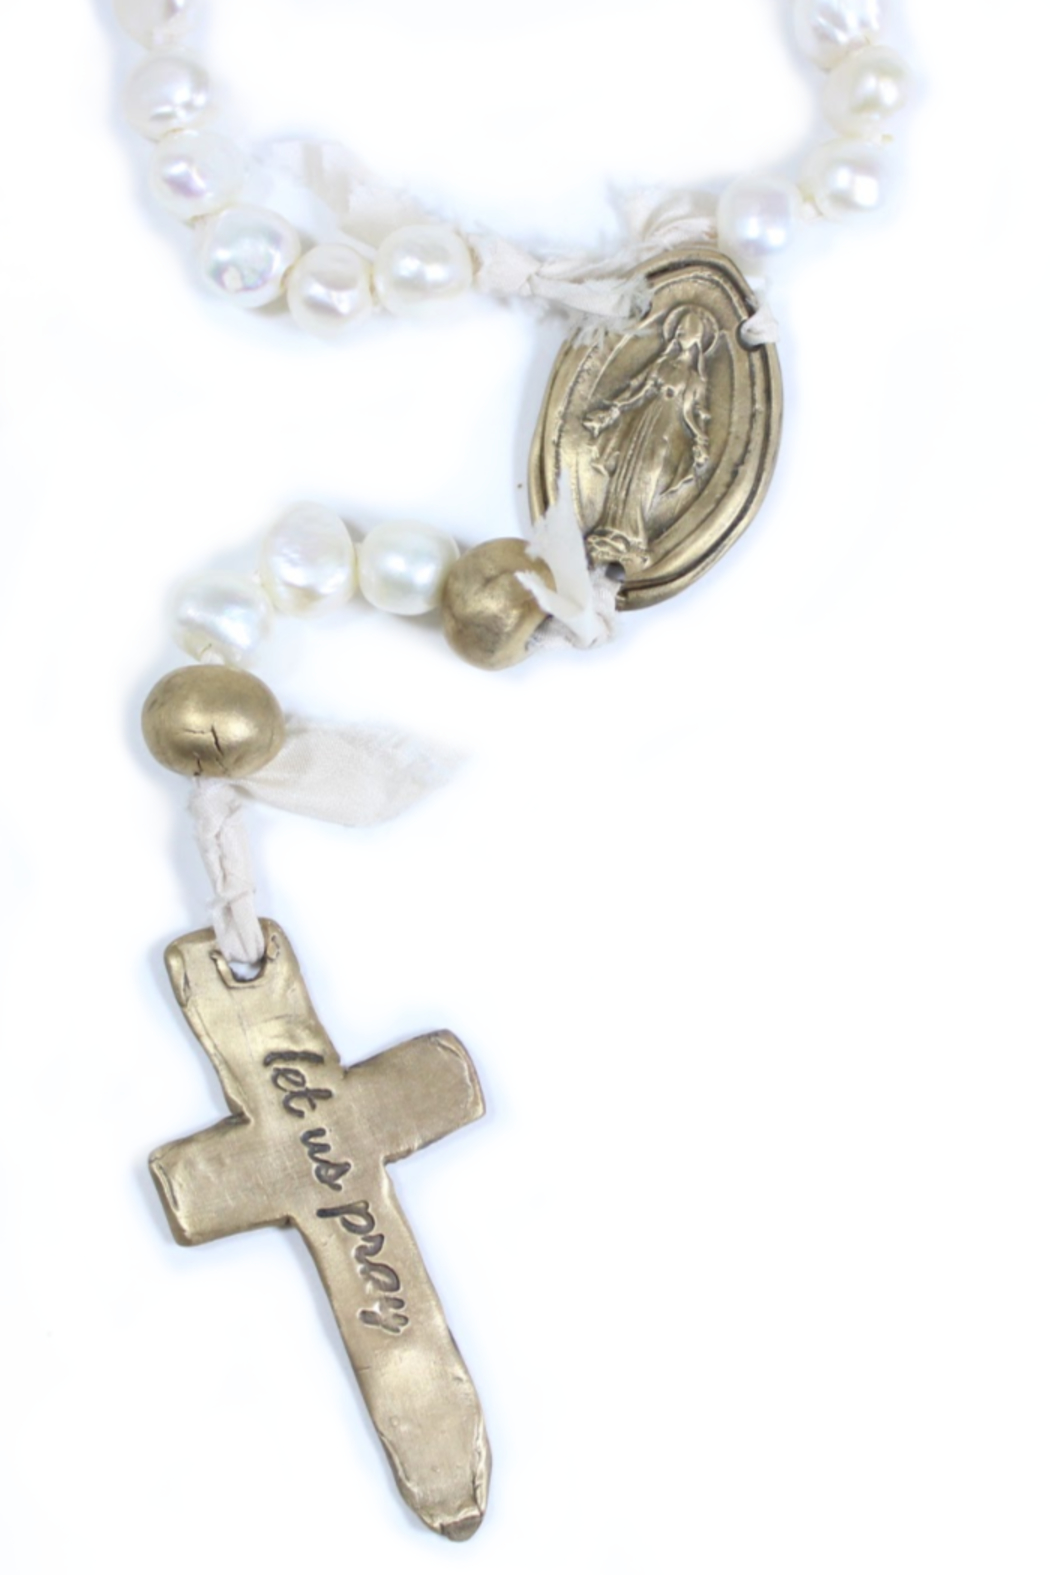 The Birds Nest FRESHWATER PEARL ROSARY WITH 6 BRONZE AND OVAL MIRACULOUS MEDAL-17.5 IN - Main Image